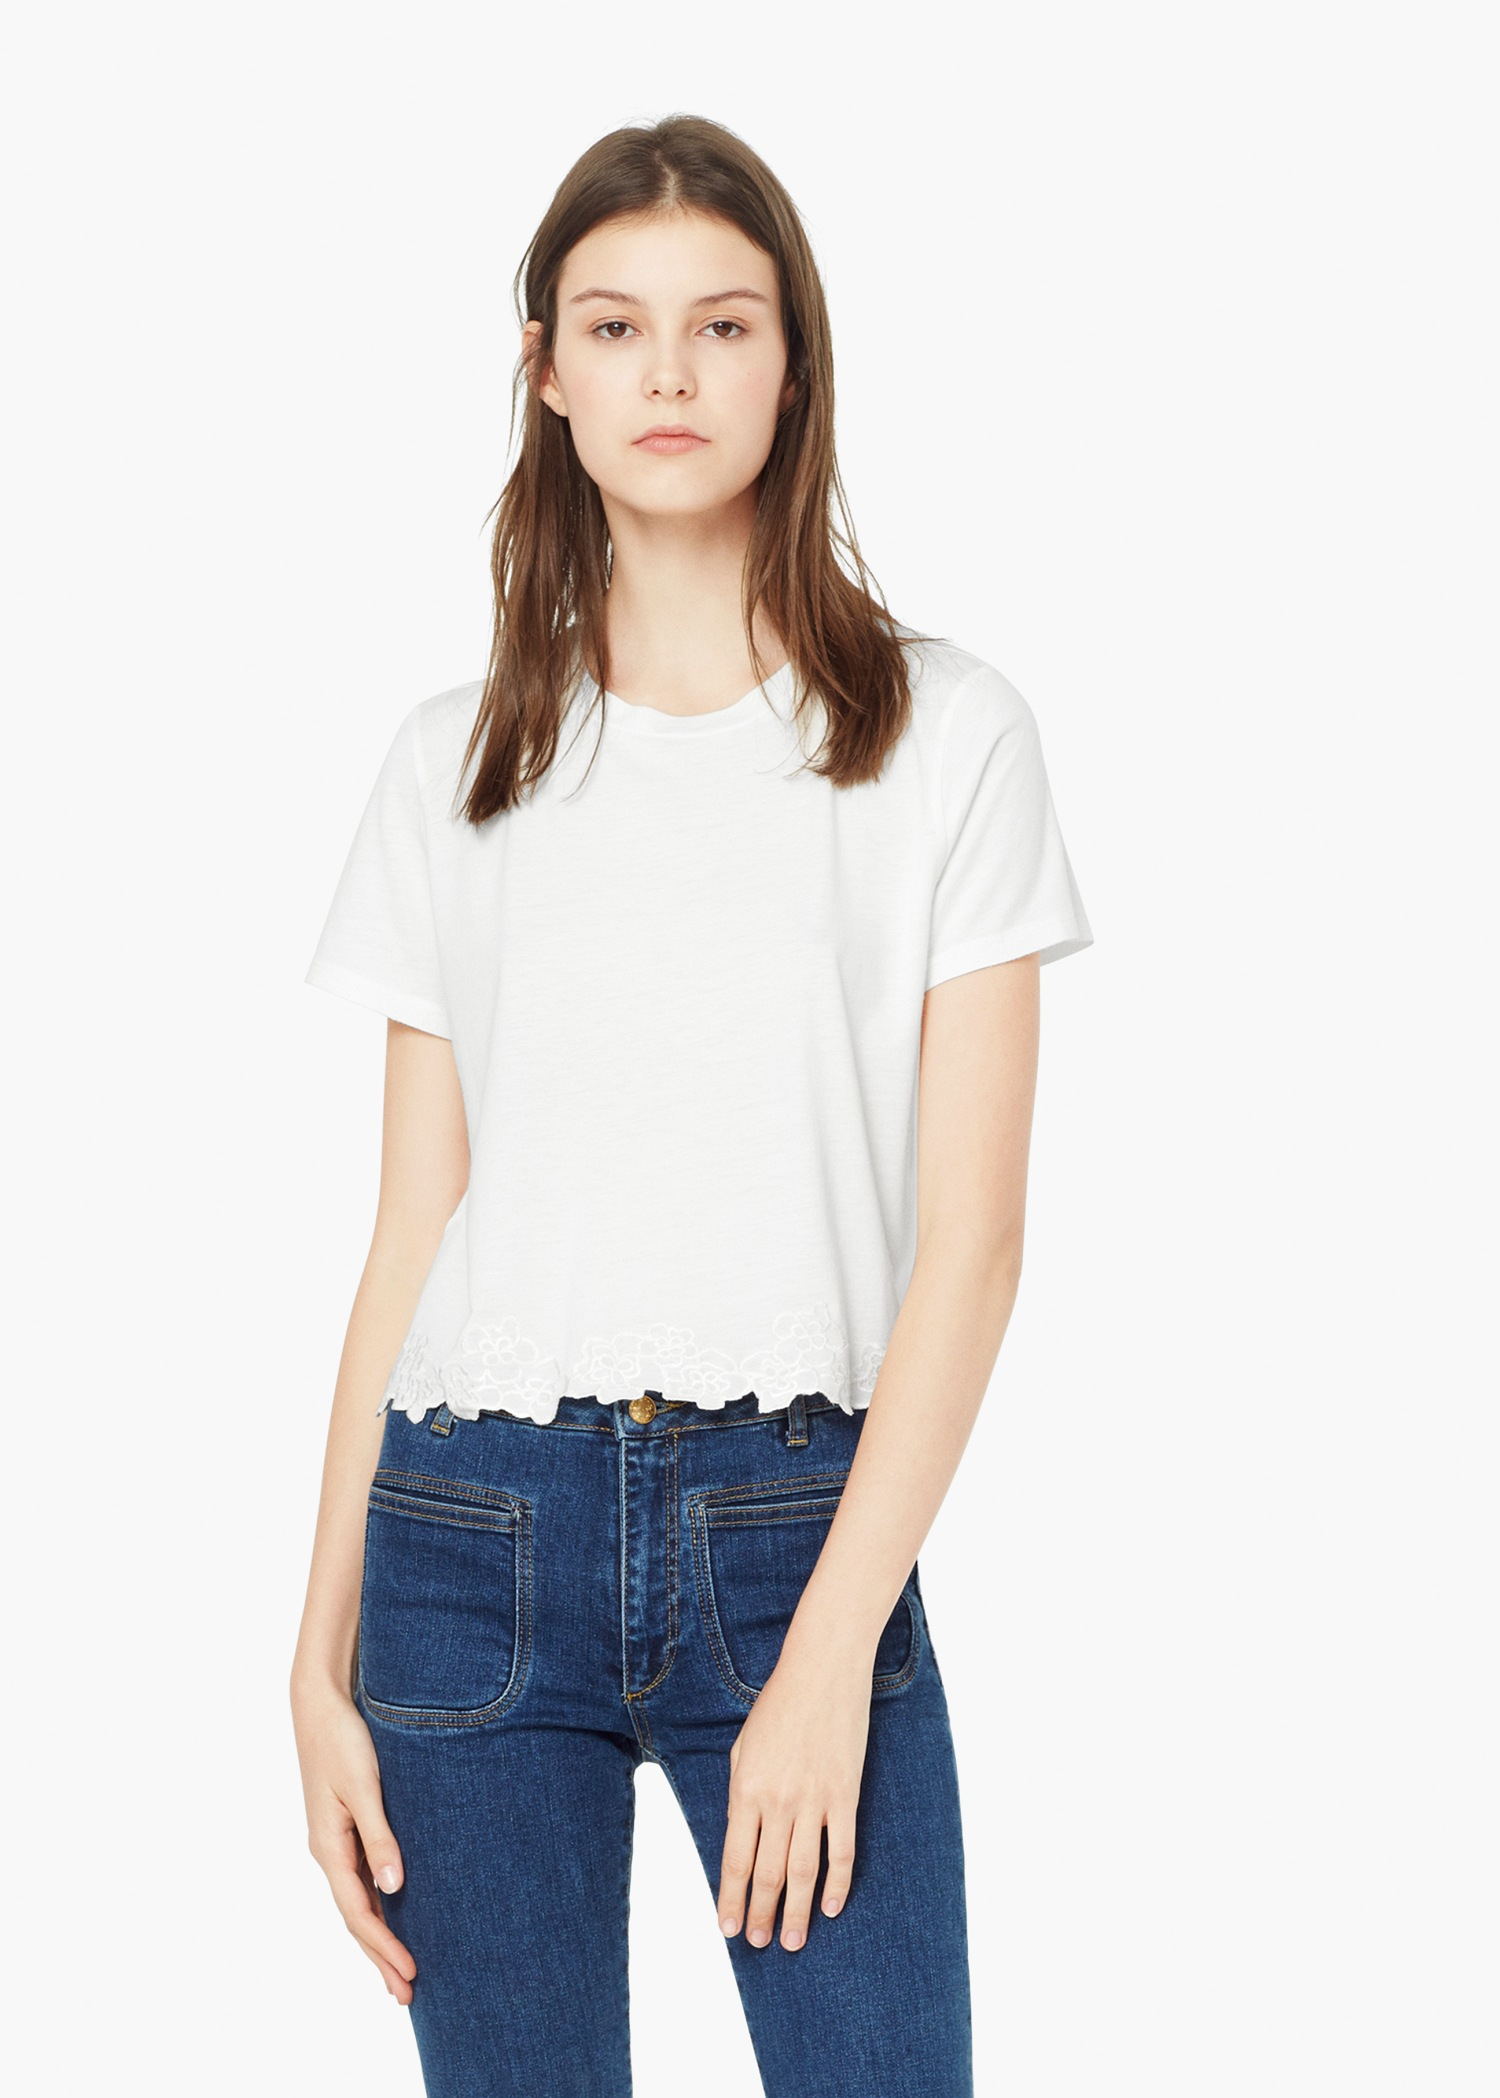 American Eagle Outfitters bring you a great collection of casual fashionable womenswear. You'll find a wide choice of women's jeans in different on-trend styles, as well as trendy tops, sweats, leggings, shirts, shorts, pants, skits, underwear, jackets, shoes and more.